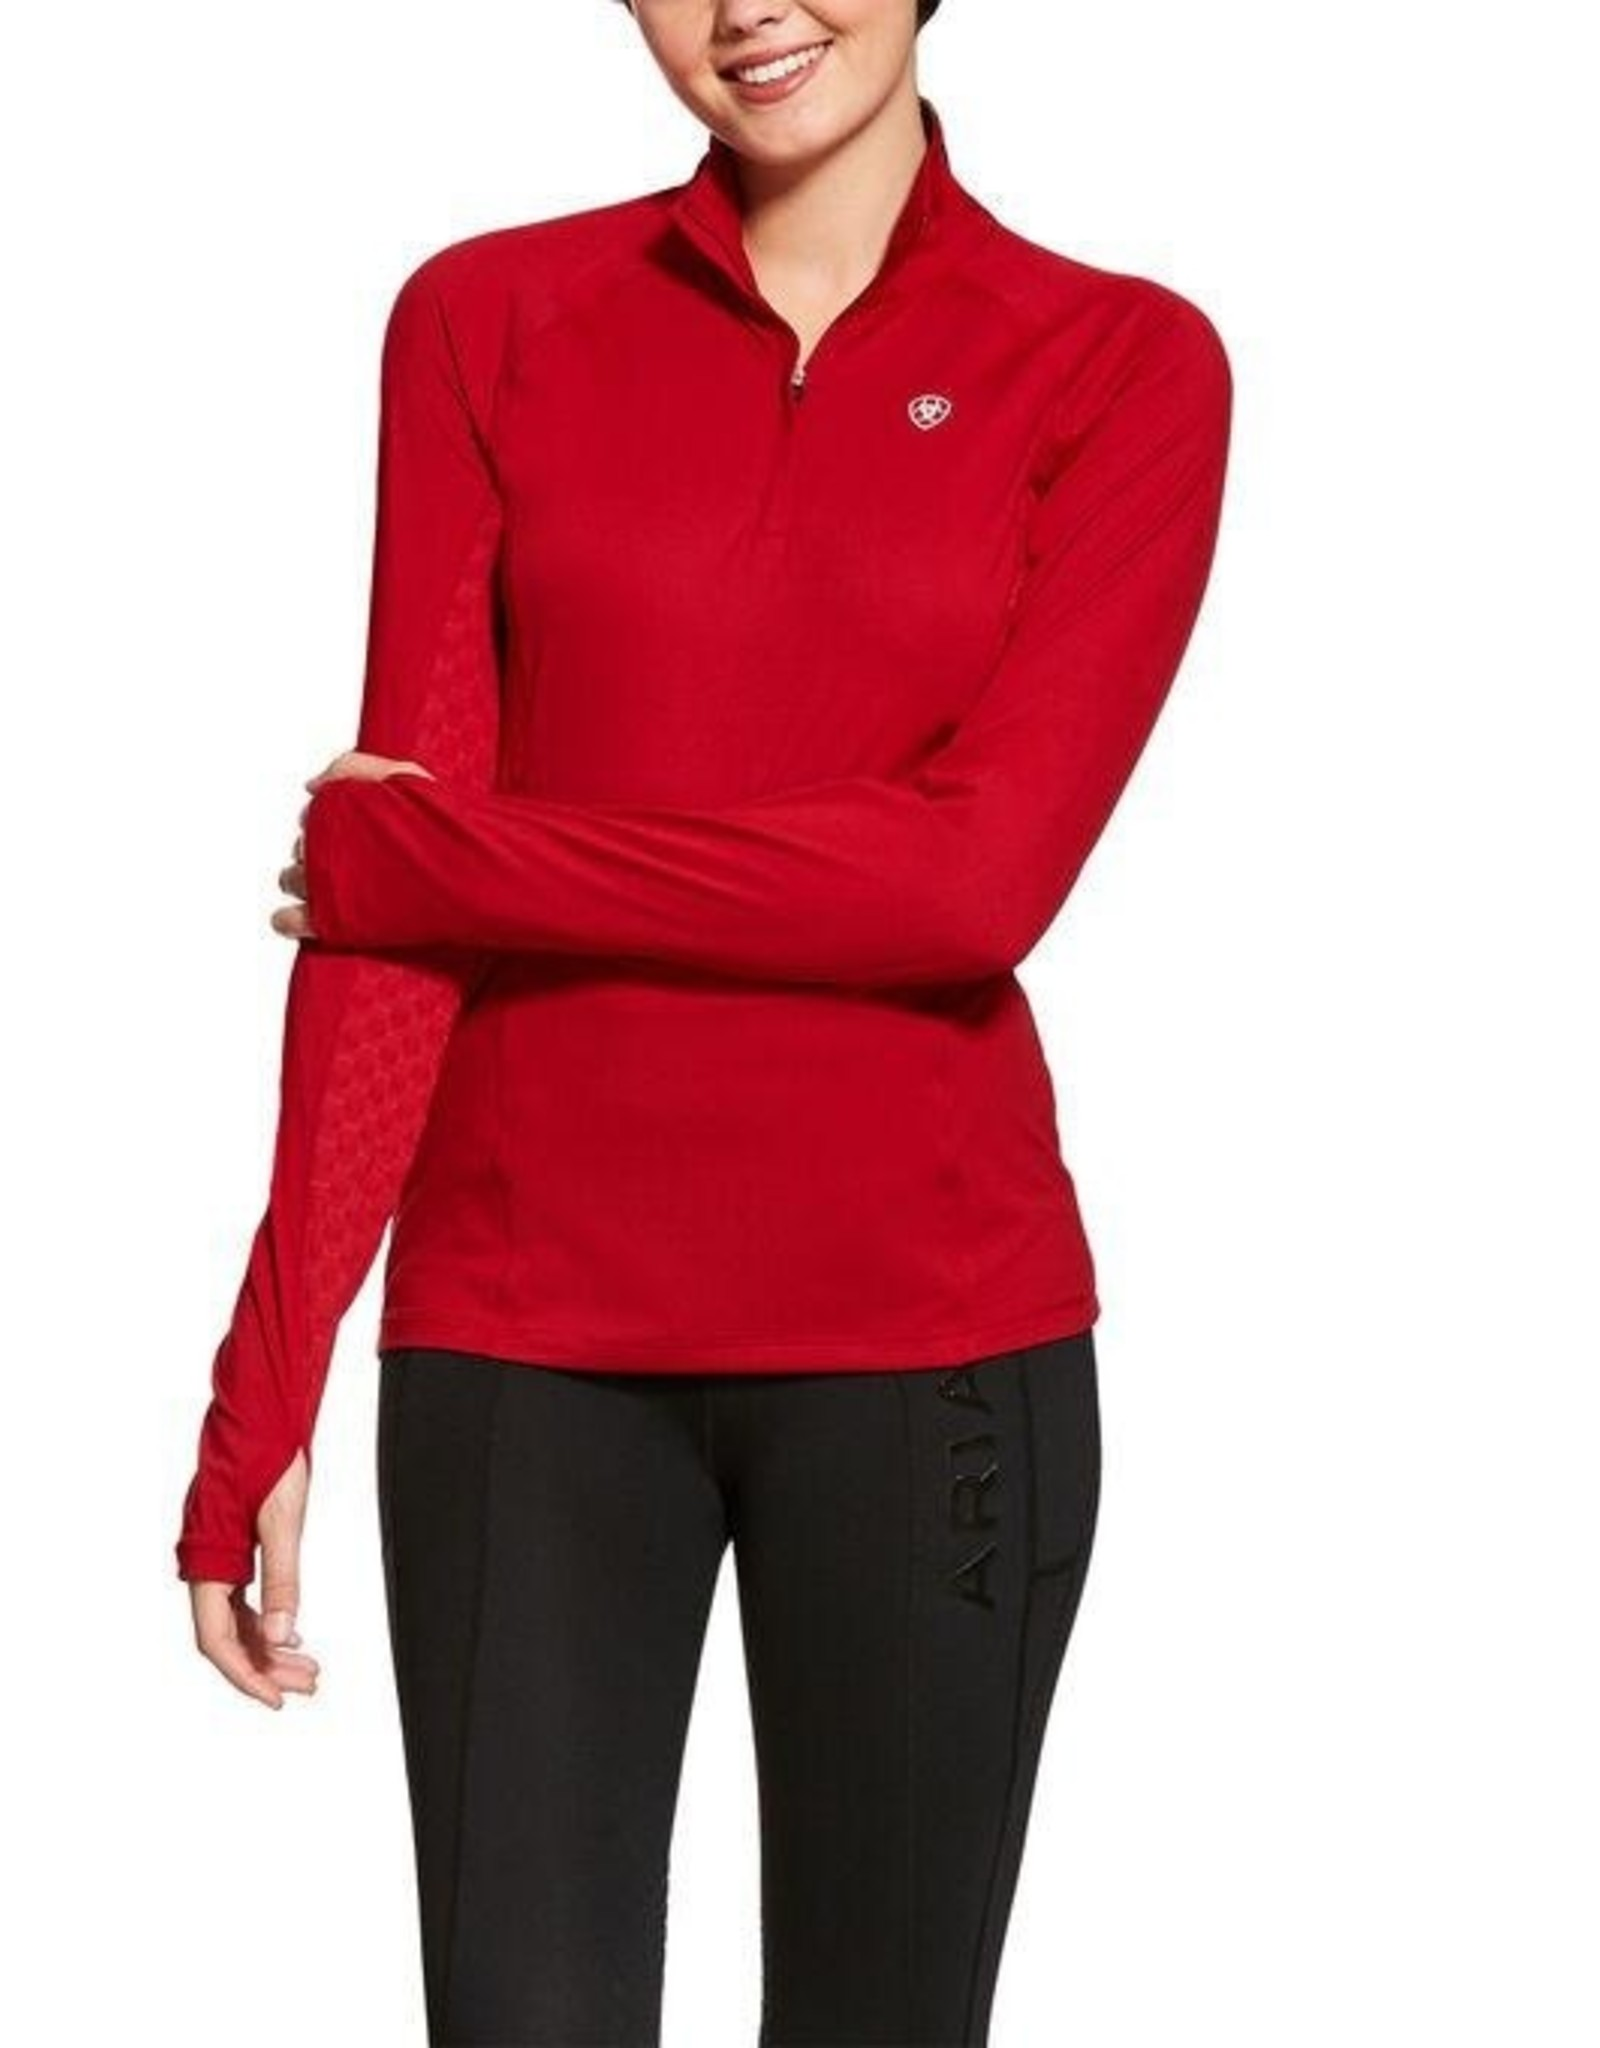 Ariat Ladies' Lowell 2.0 Baselayer Shirt